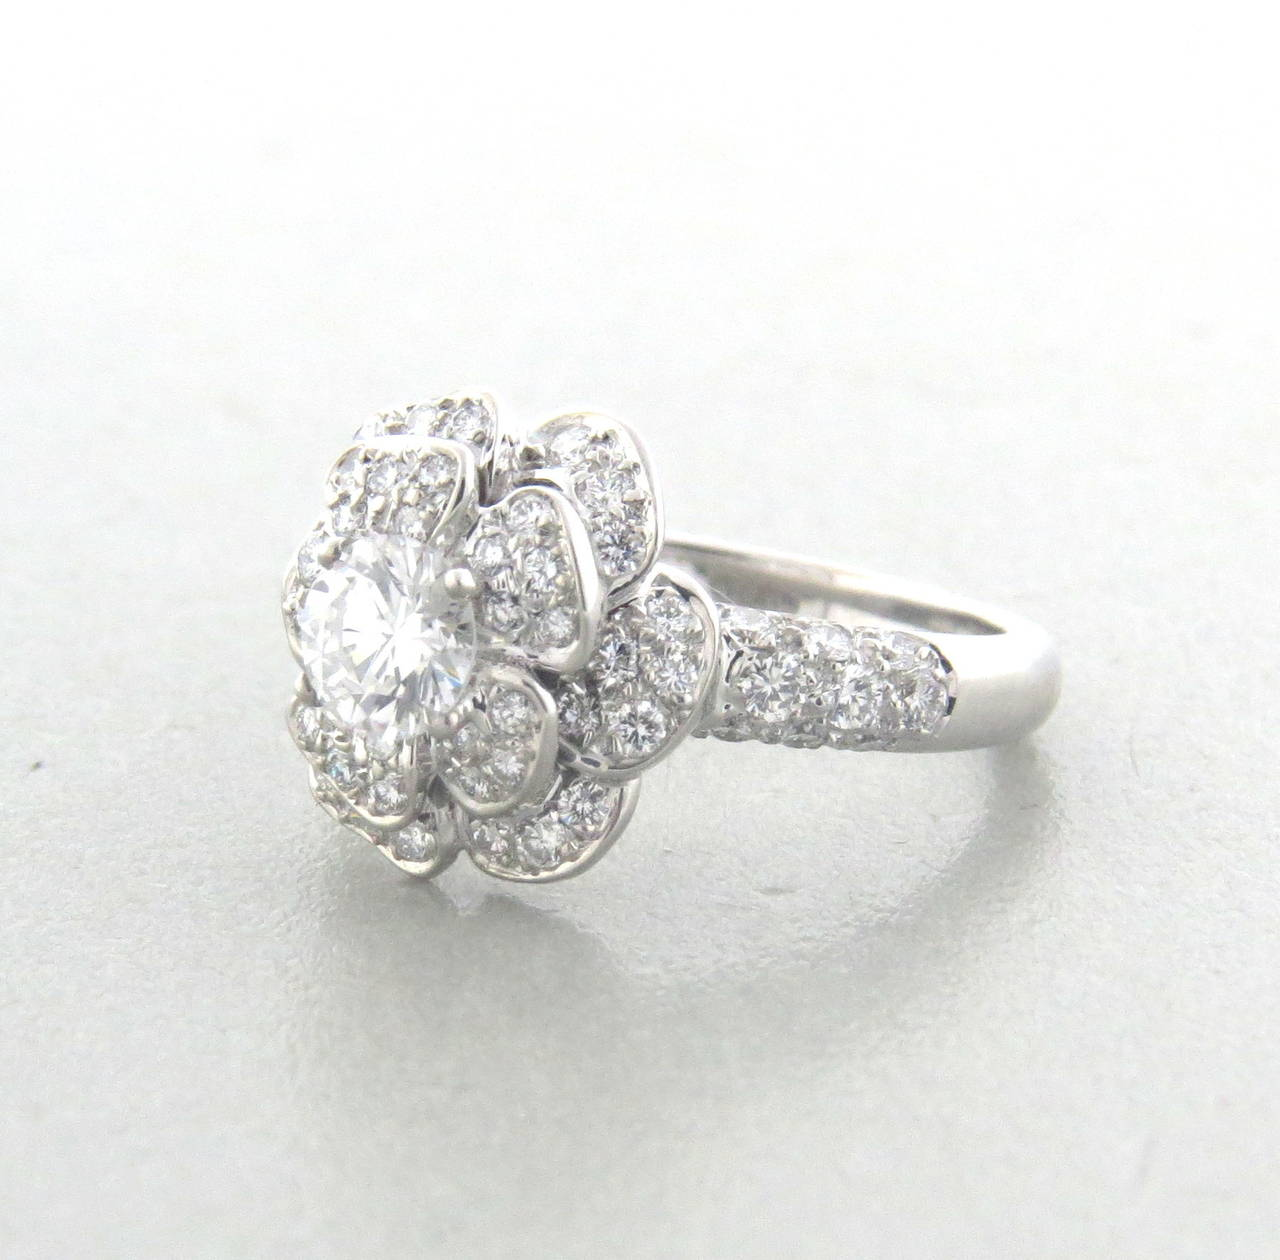 bridal camellia rose engagement moissanite carat brilliant jewelry gold unique ring tumblr post set forever rings